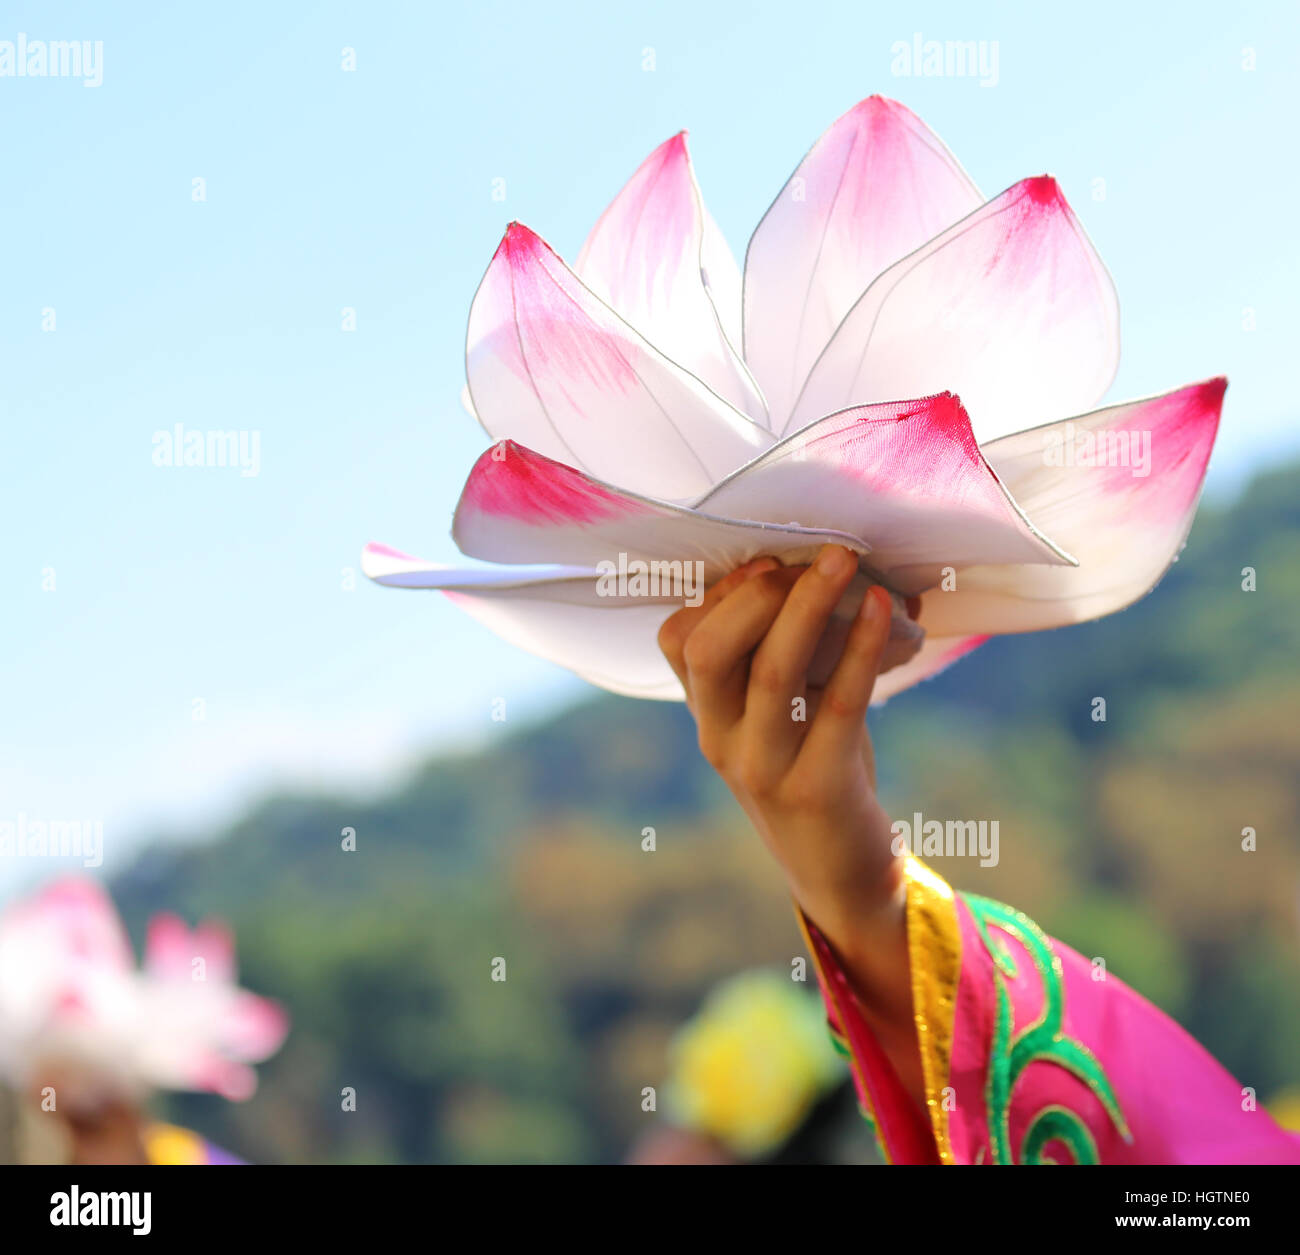 Big lotus flower supported by the hands of the oriental dancer stock big lotus flower supported by the hands of the oriental dancer mightylinksfo